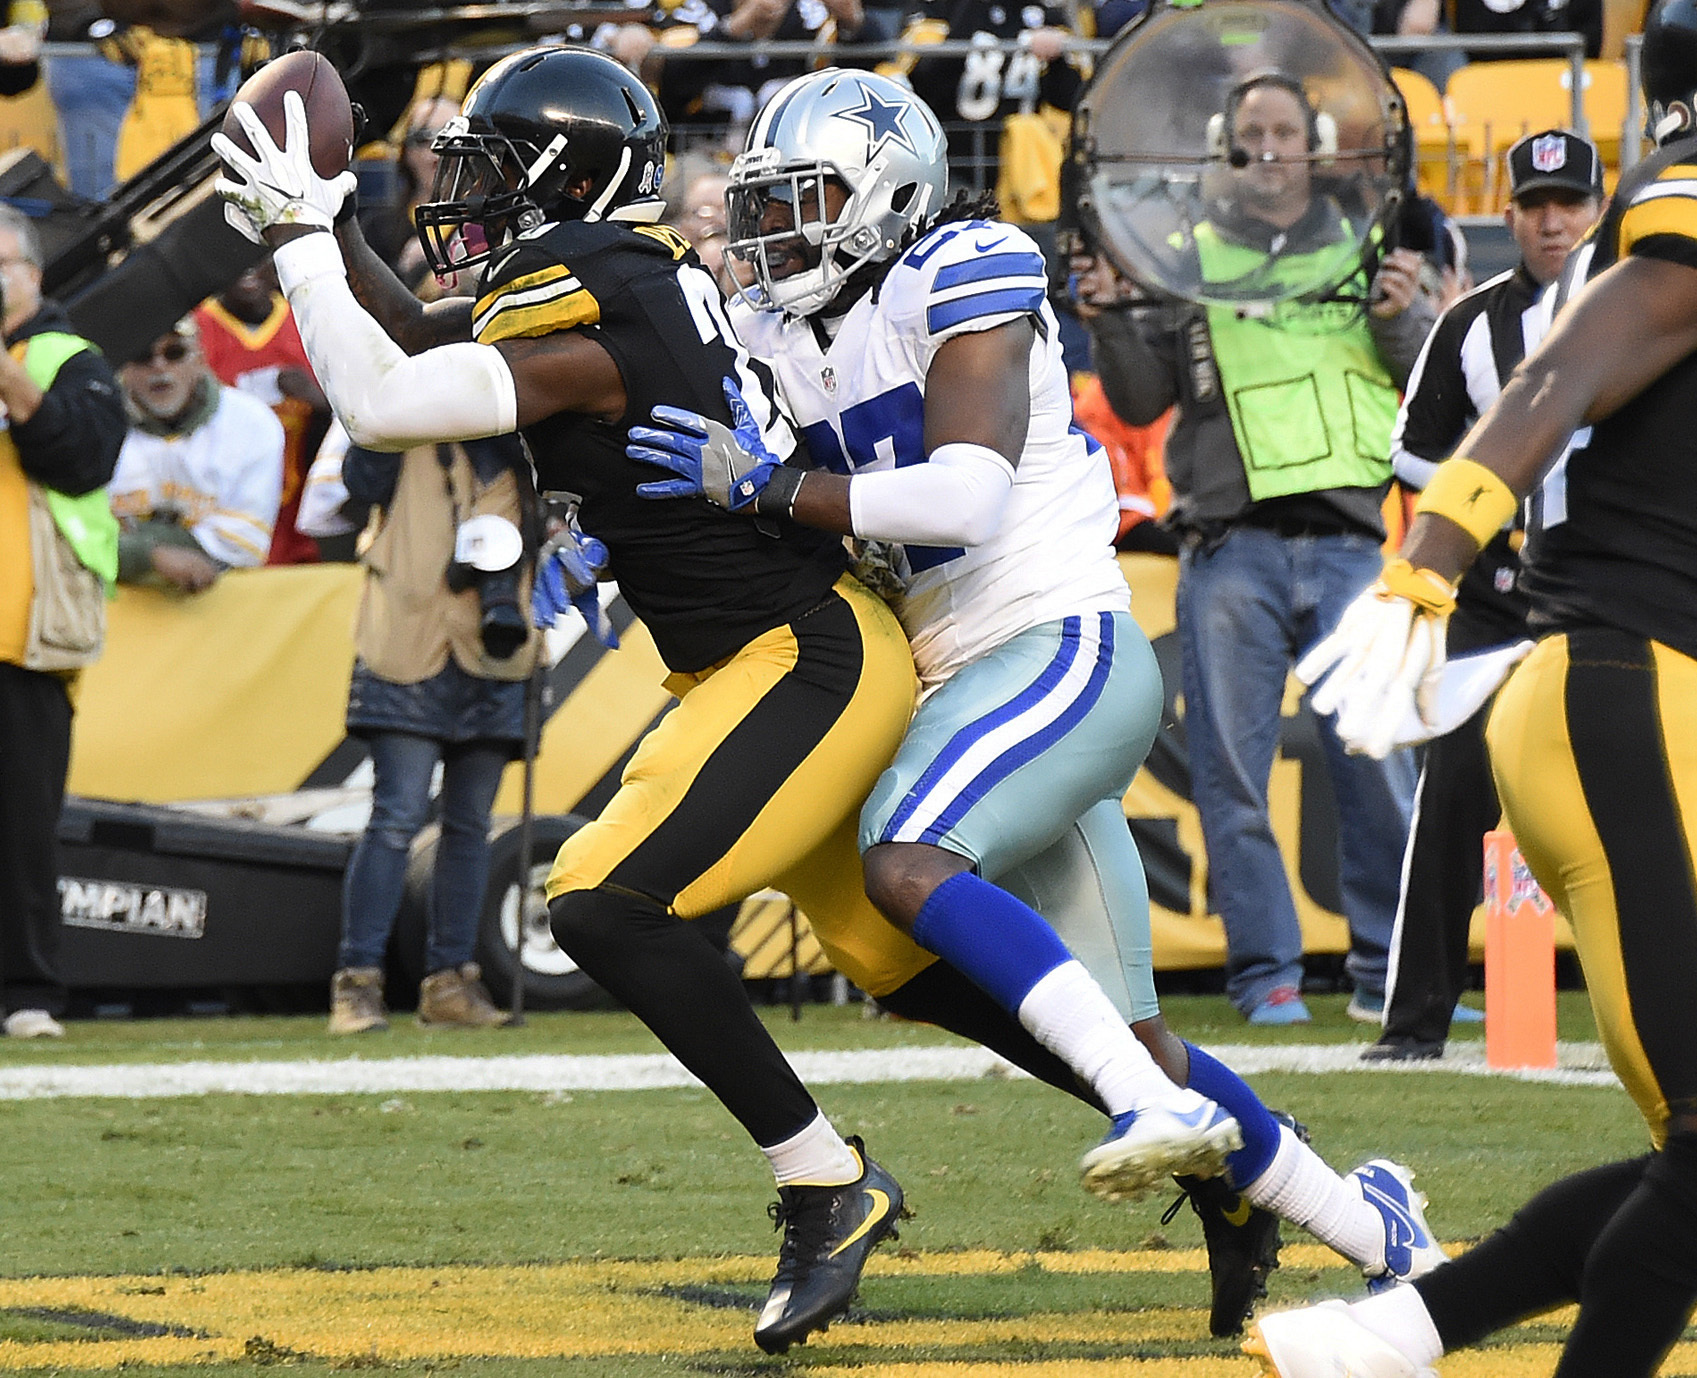 FILE - In this Nov. 13, 2016, file photo, Pittsburgh Steelers running back Le'Veon Bell (26) catches a touchdown pass from quarterback Ben Roethlisberger with Dallas Cowboys free safety J.J. Wilcox (27) defending during the first half of an NFL football g